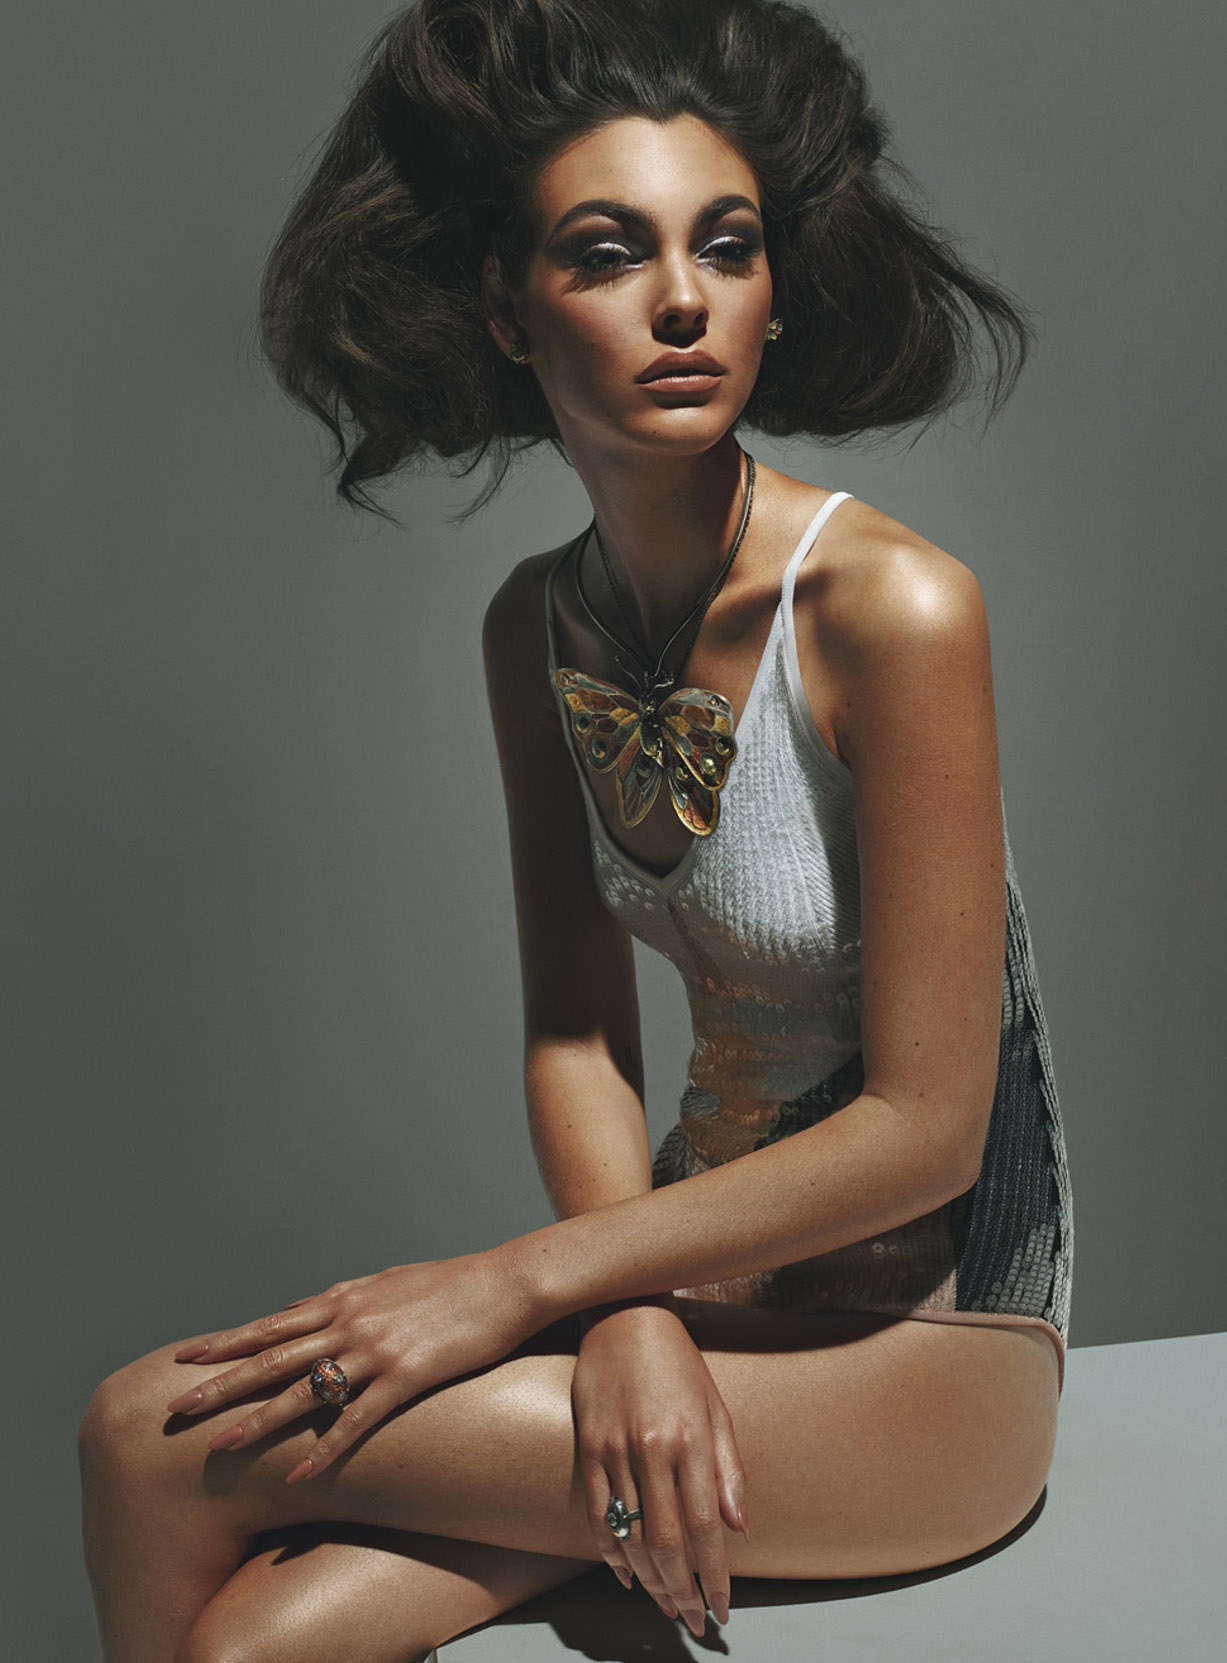 Vittoria Ceretti by Mert Alas and Marcus Piggott